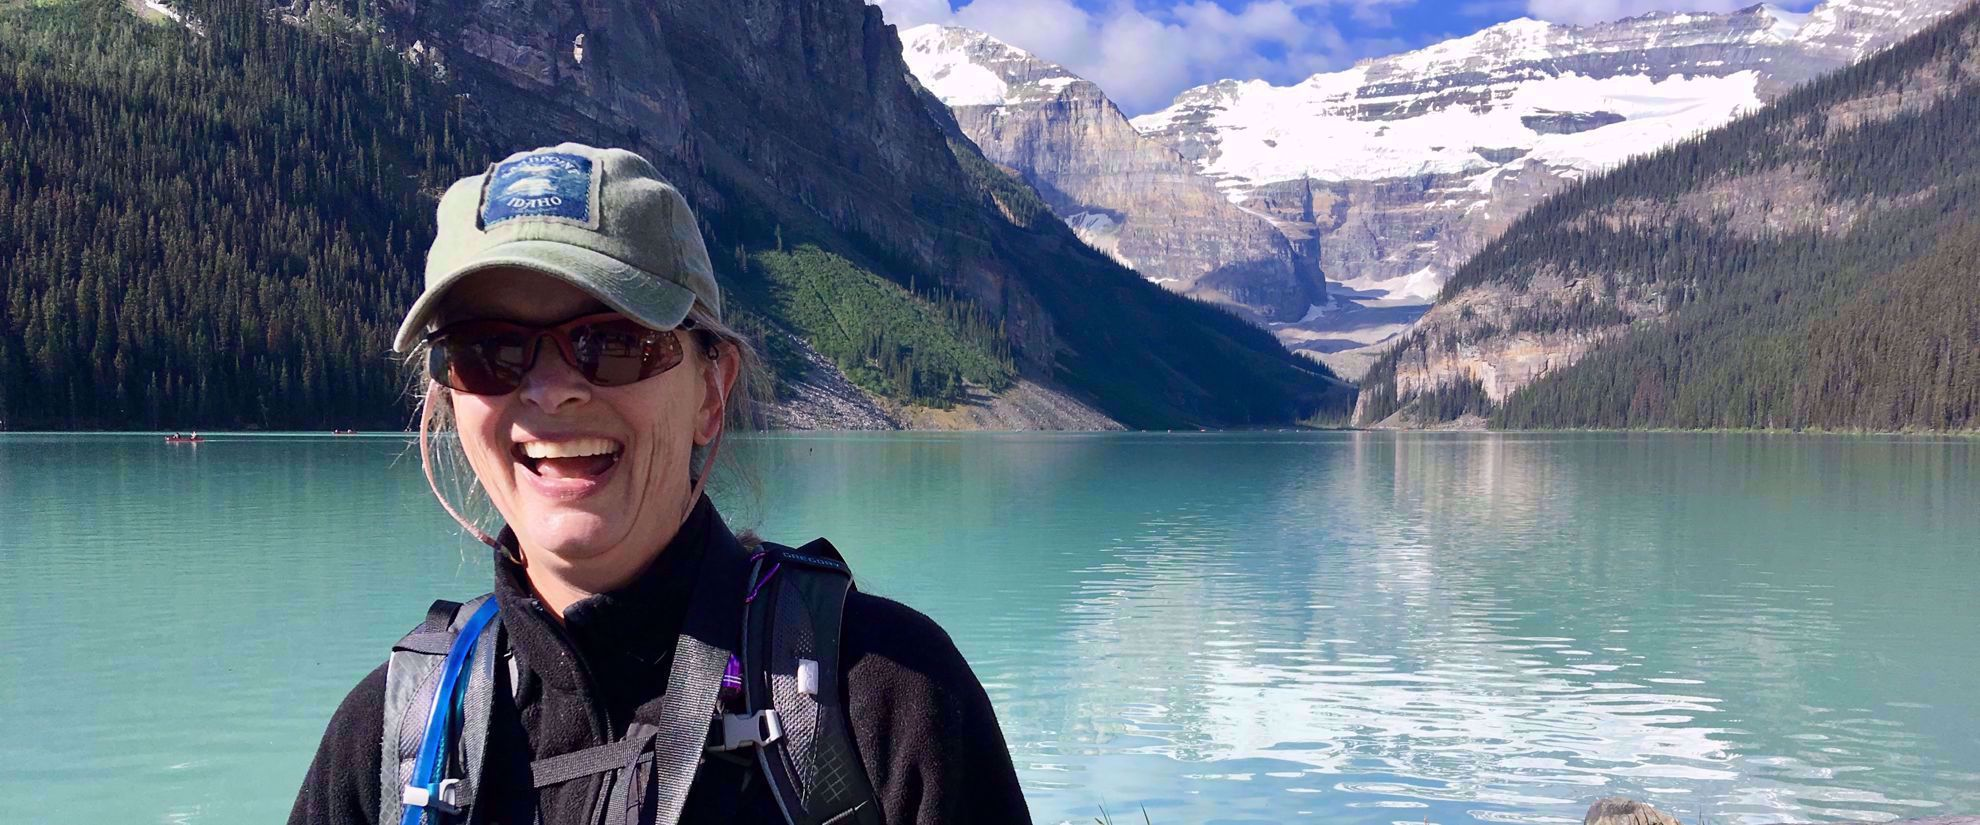 Woman smiling on group tour through canadian rockies